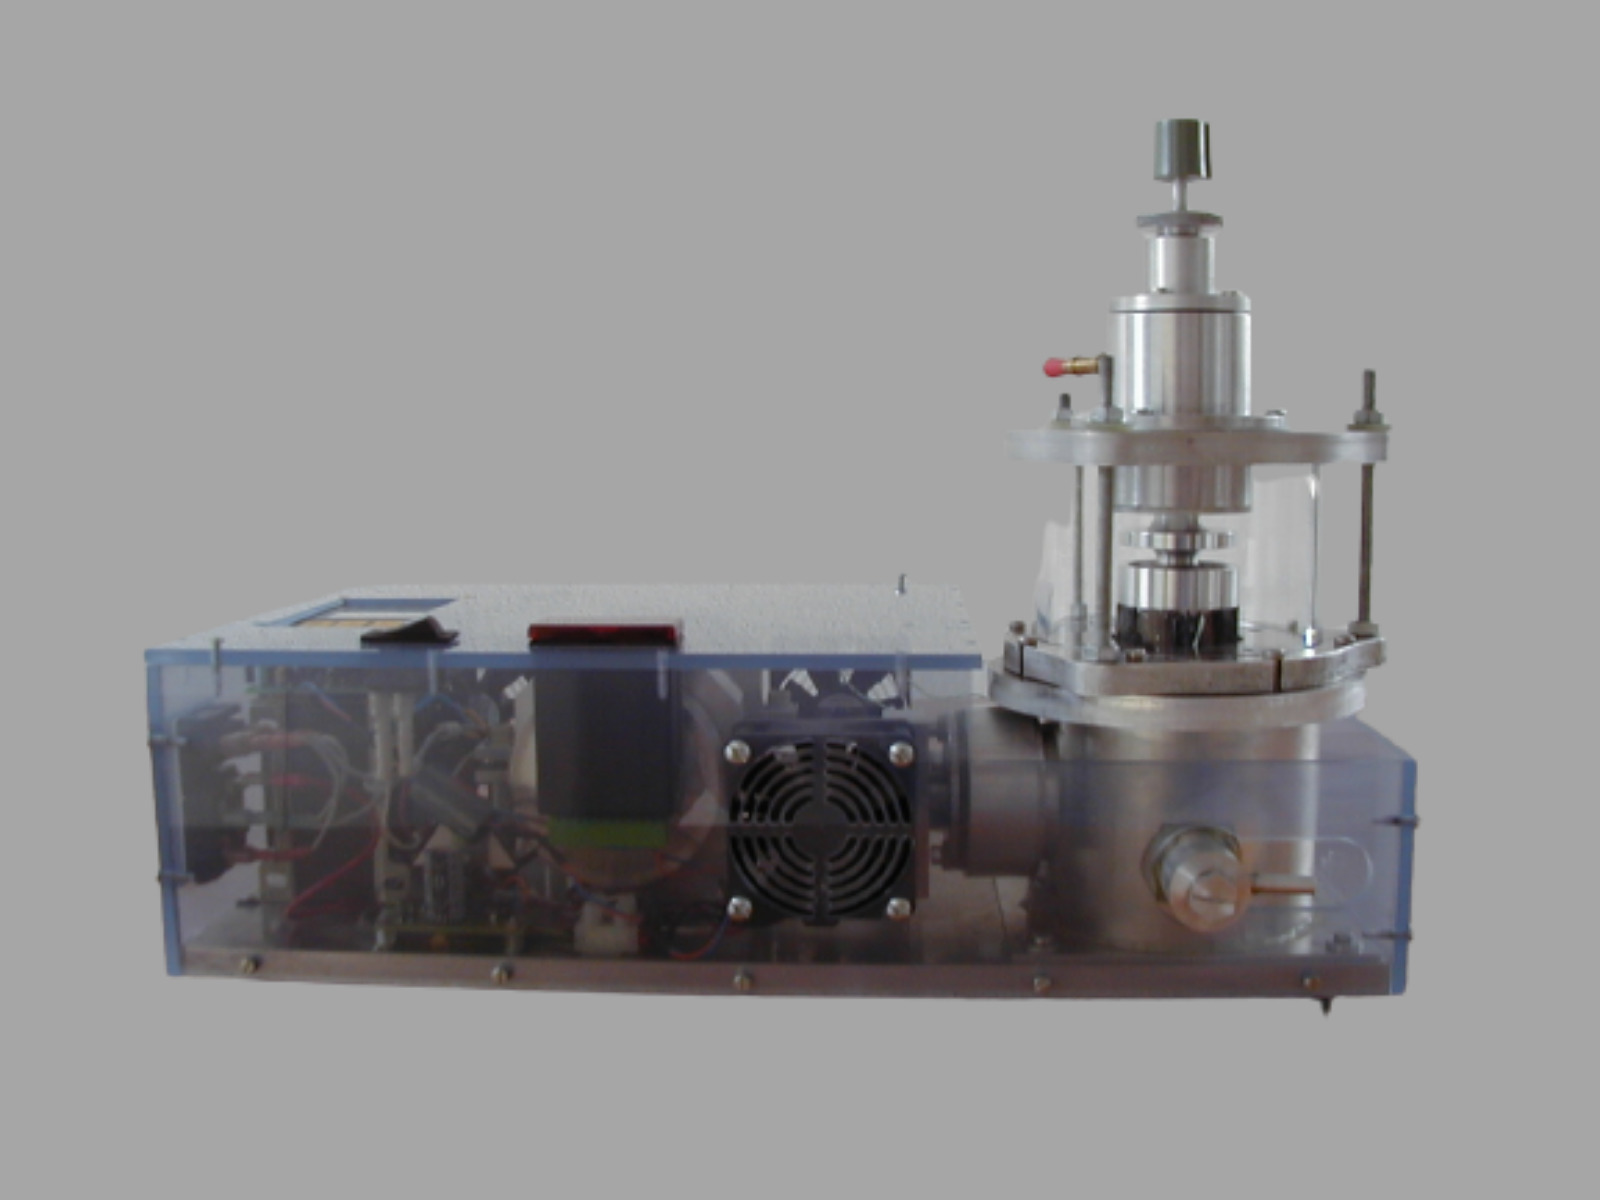 Superconducting magnetic bearing with cryocooler